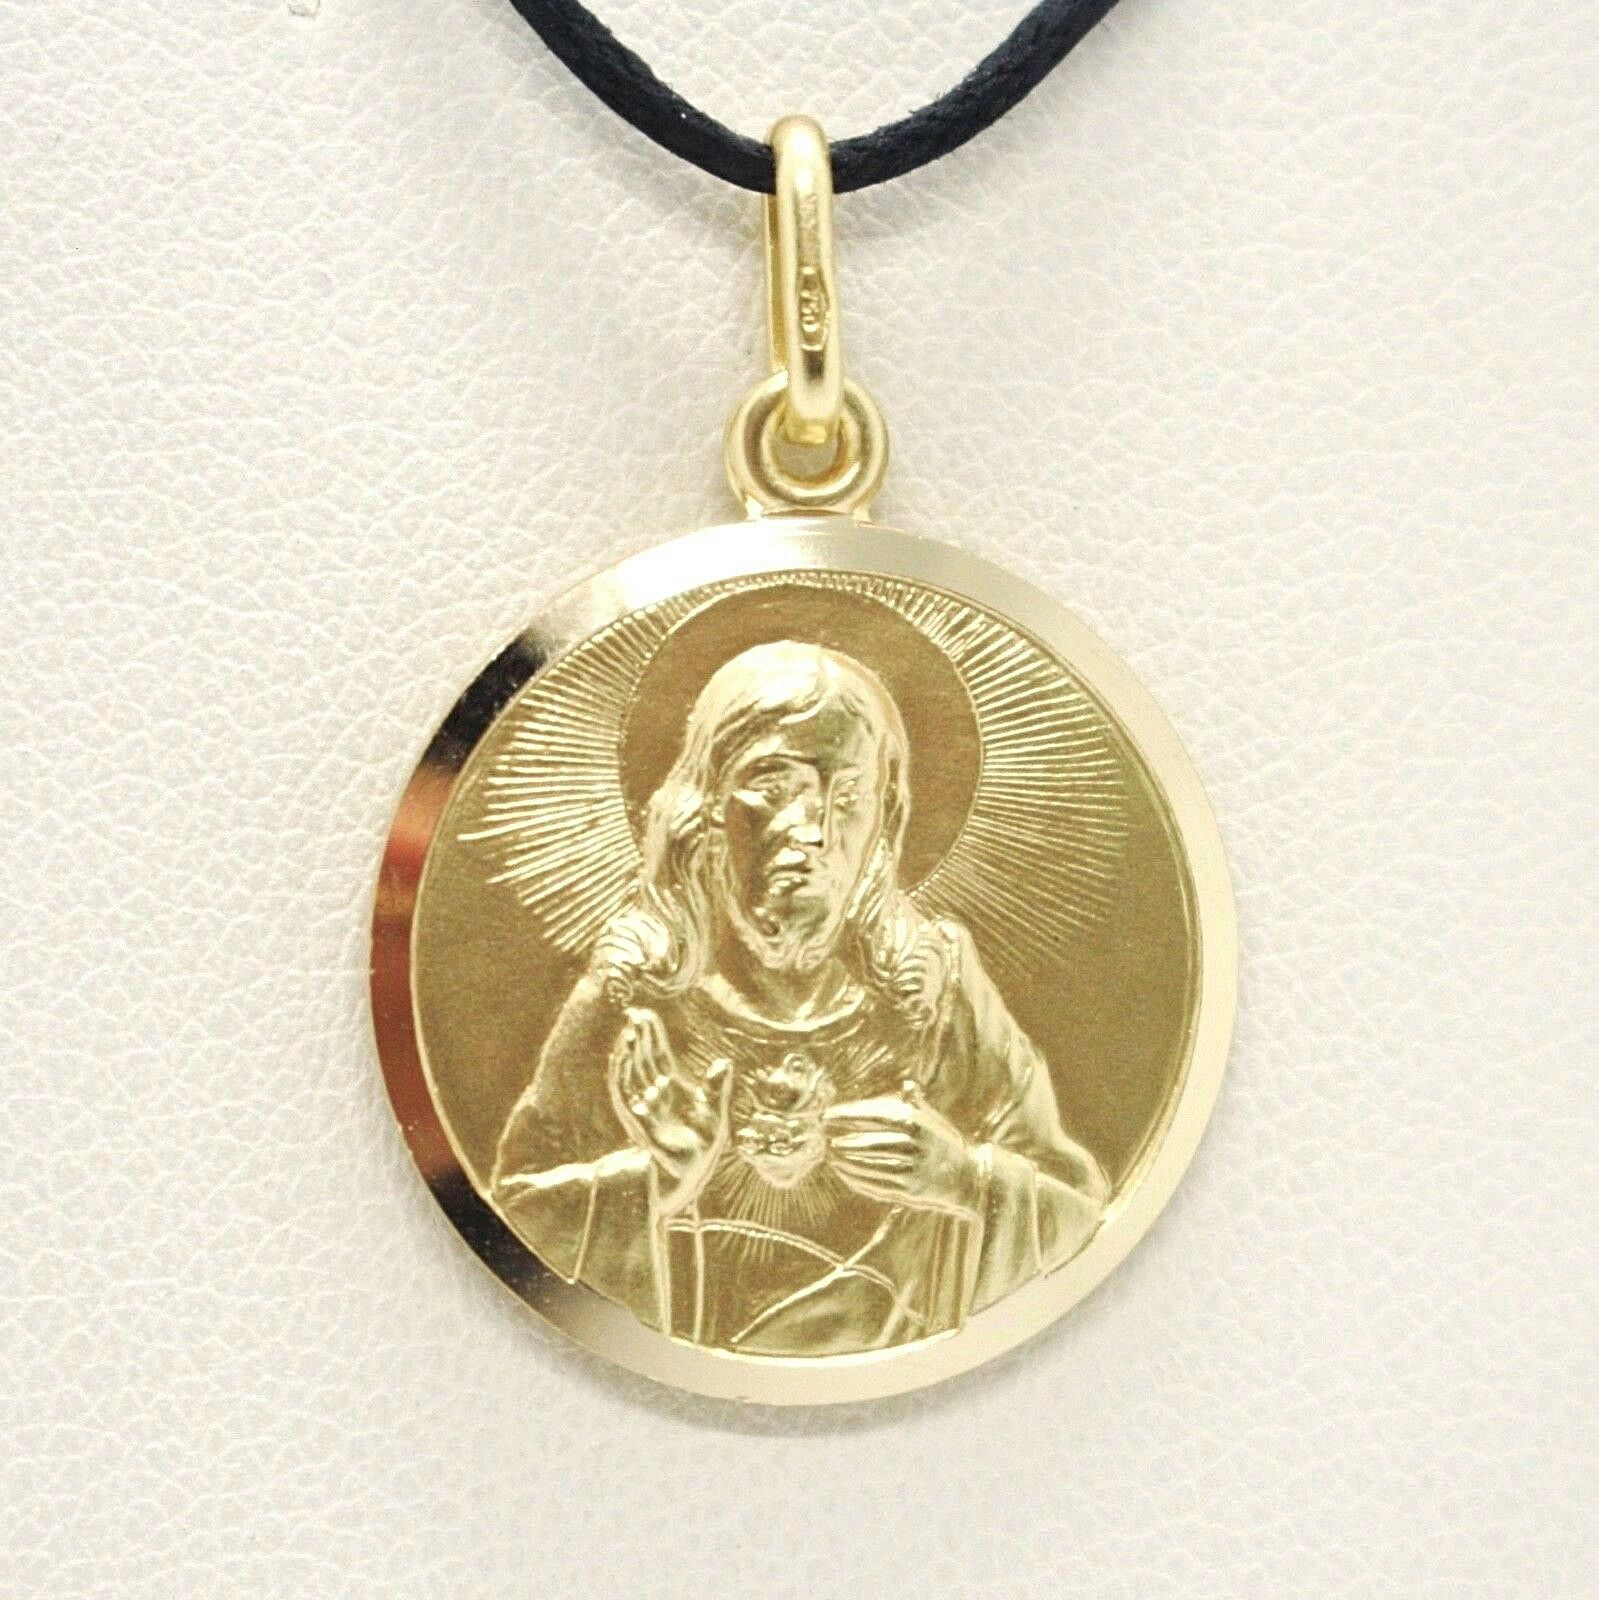 SOLID 18K YELLOW GOLD SACRED HEART OF JESUS 13 MM ROUND MEDAL, MADE IN ITALY